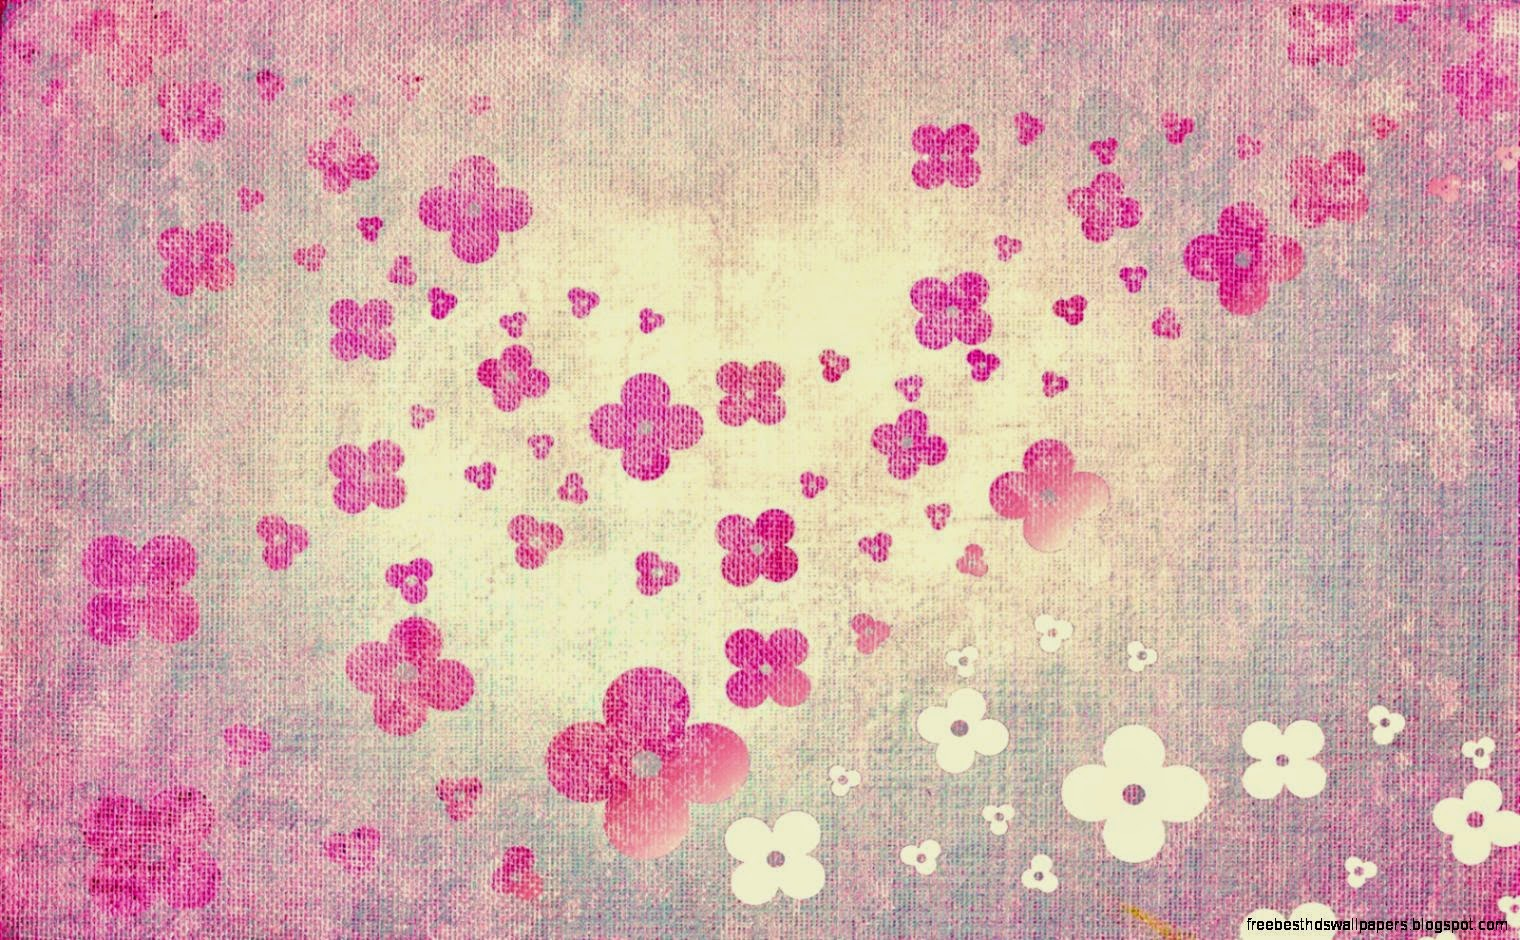 Cute Fl Tumblr Backgrounds | Wallpapers Gallery